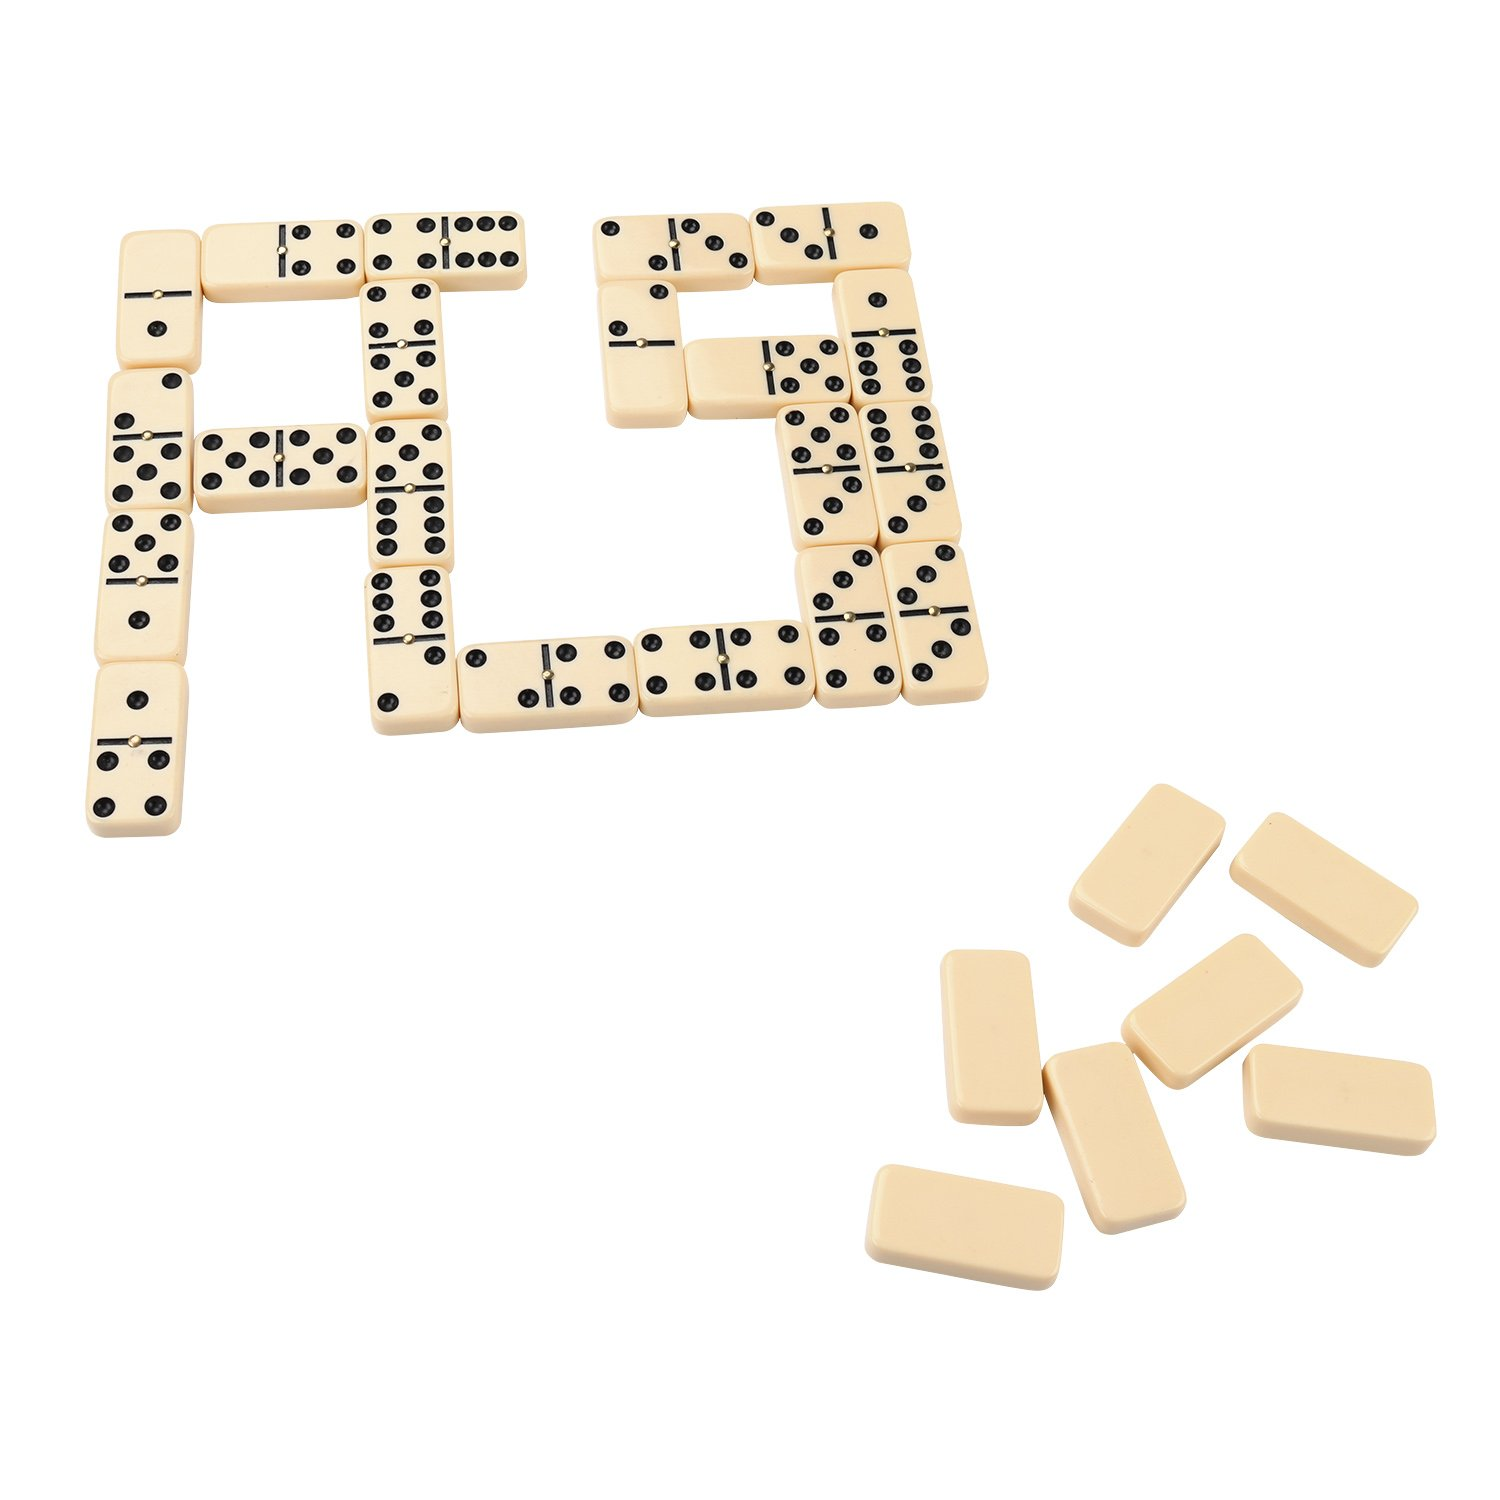 Amazon.com: Double 6 Dominoes Set for Kids in Home or School ...